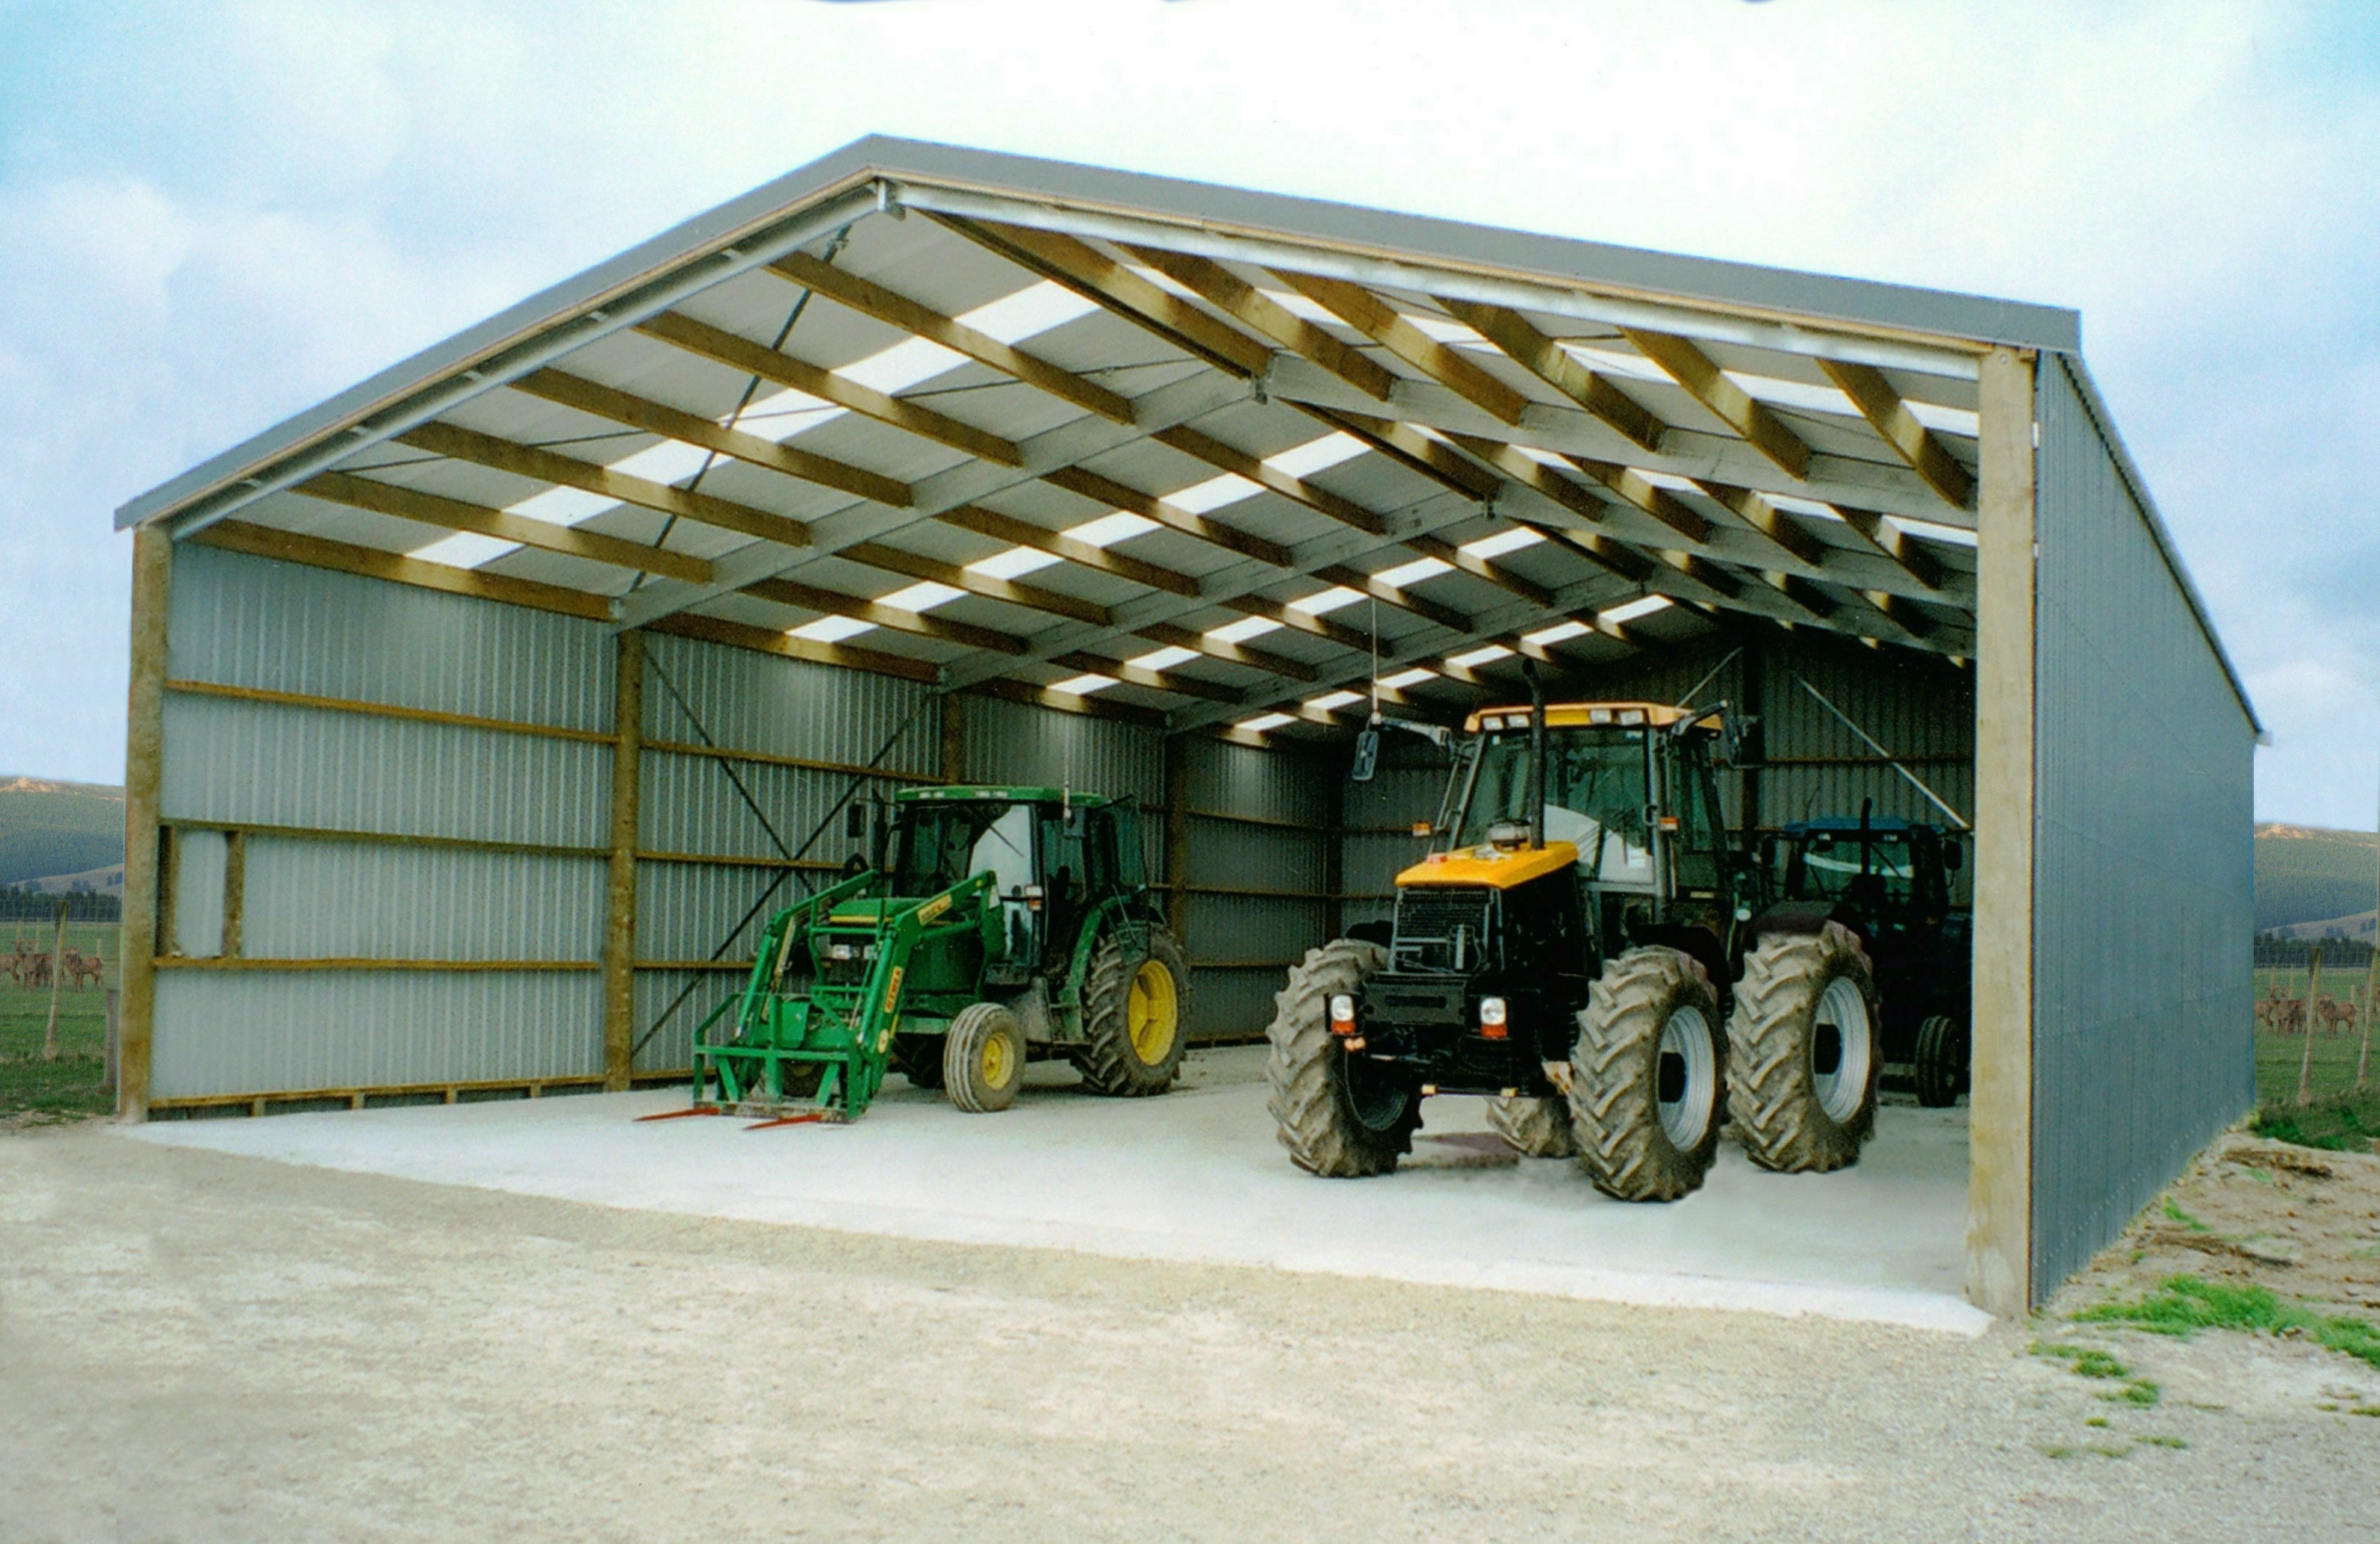 Open-sided large contractor shed with implements inside